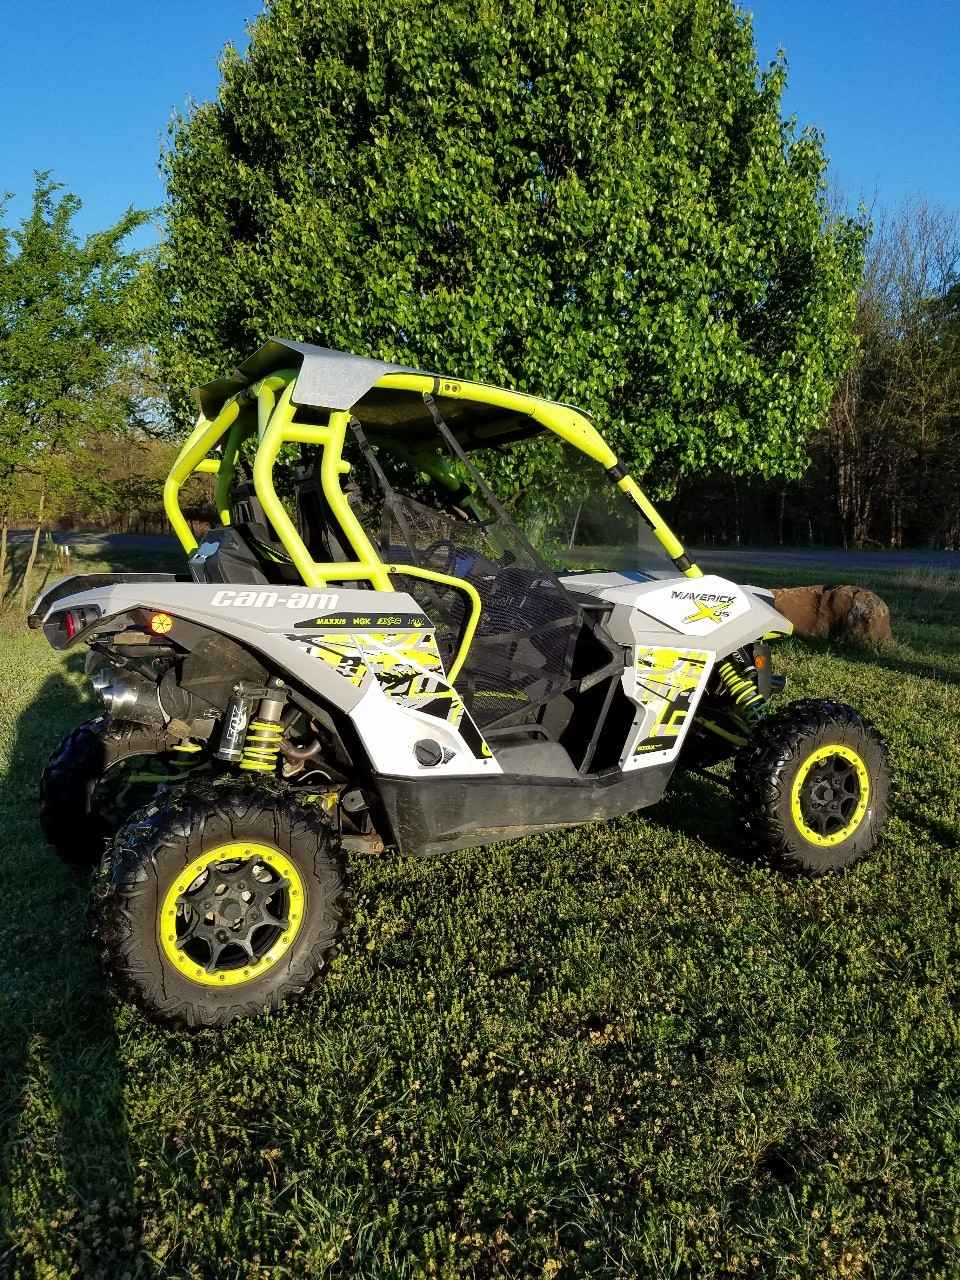 used 2015 can am maverick max x ds 1000r turbo atvs for sale in oklahoma on atv trades. Black Bedroom Furniture Sets. Home Design Ideas